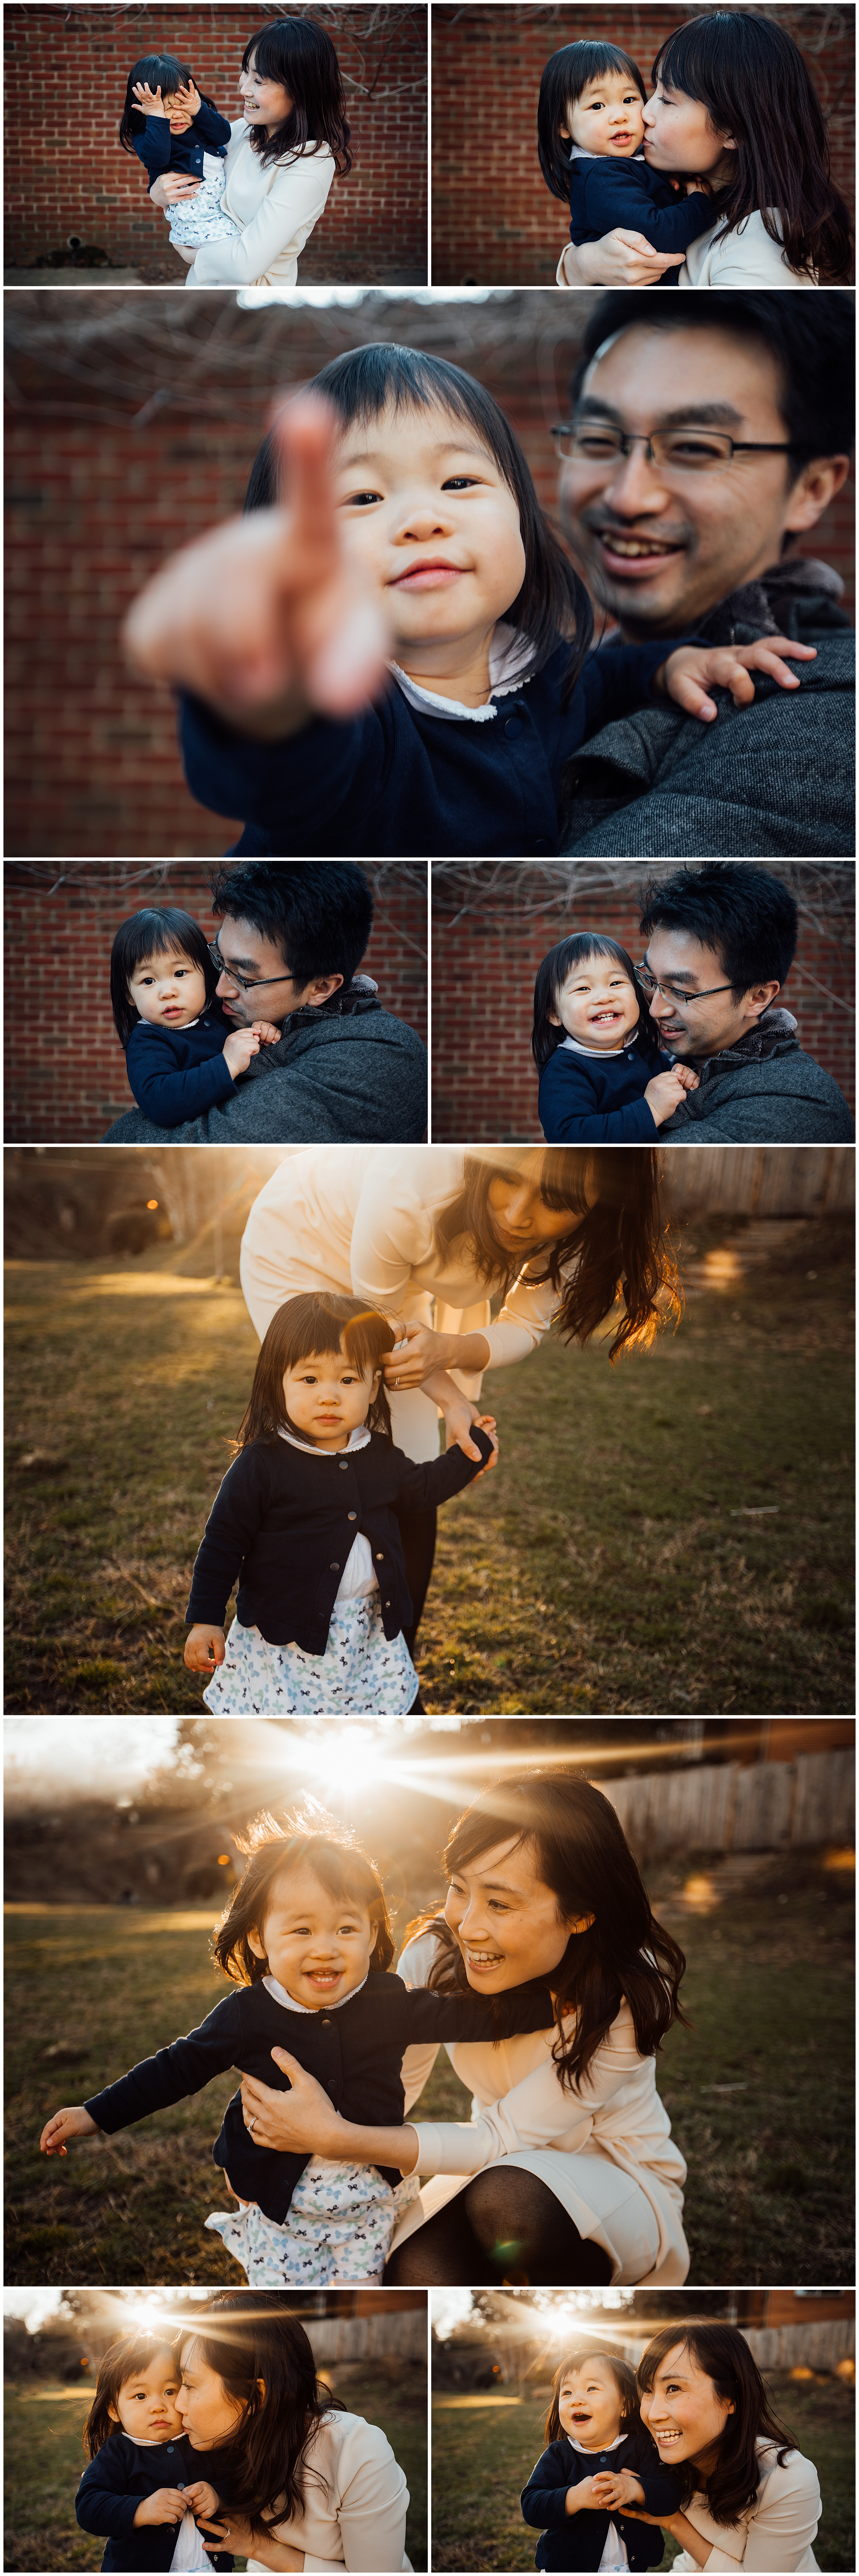 Sunlit family urban session by Huntsville and Madison Alabama family photographer Rachel K Photo